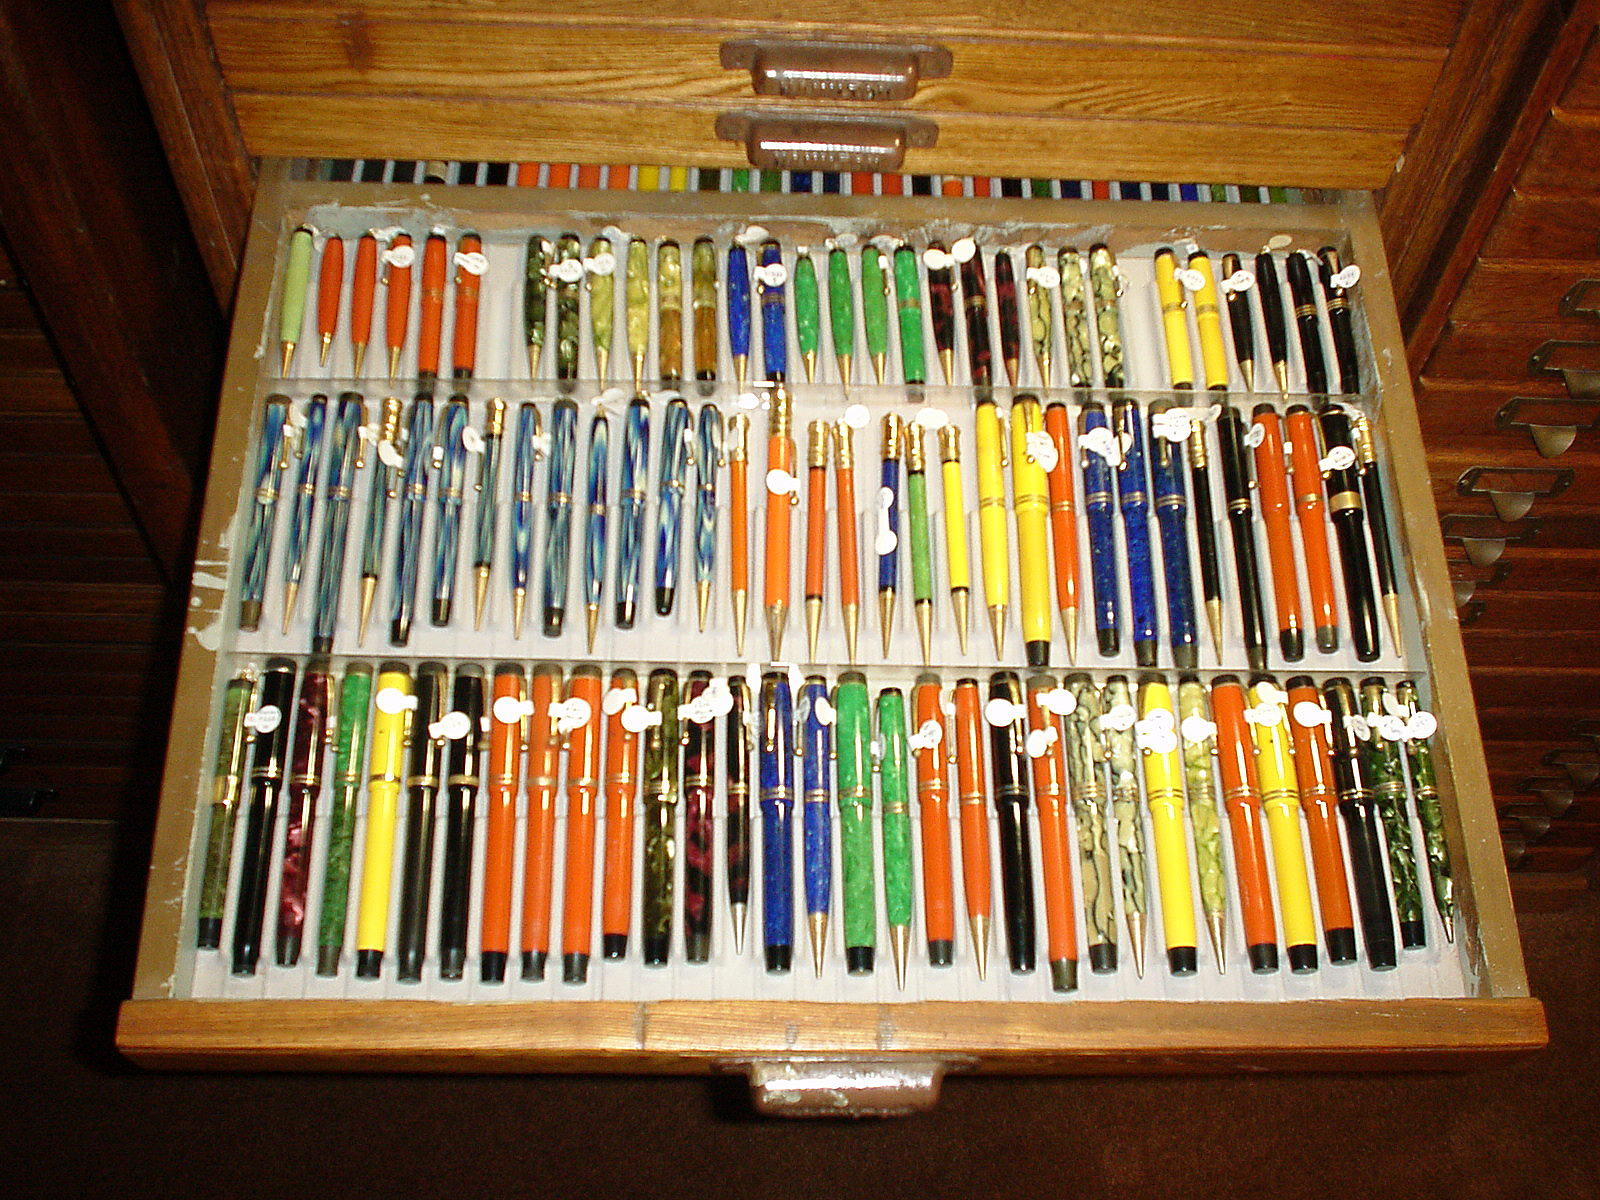 Slotted Display Tray Liners For Vintage Pens